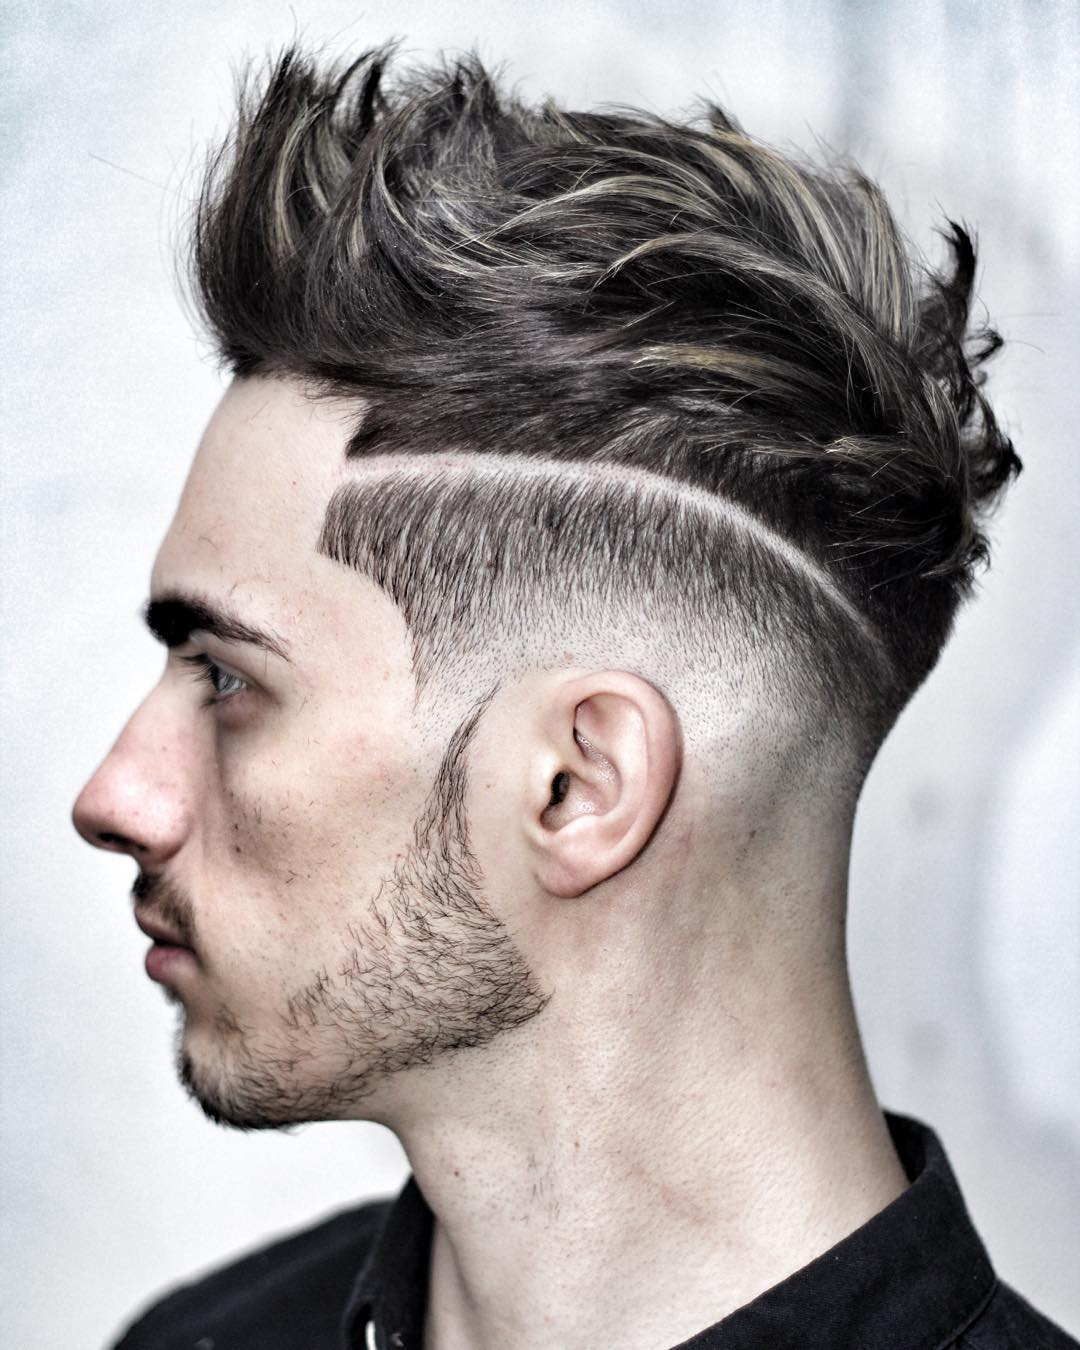 Tremendous Short Hair Hairstyles And Haircuts For Men 2017 Short Hairstyles For Black Women Fulllsitofus